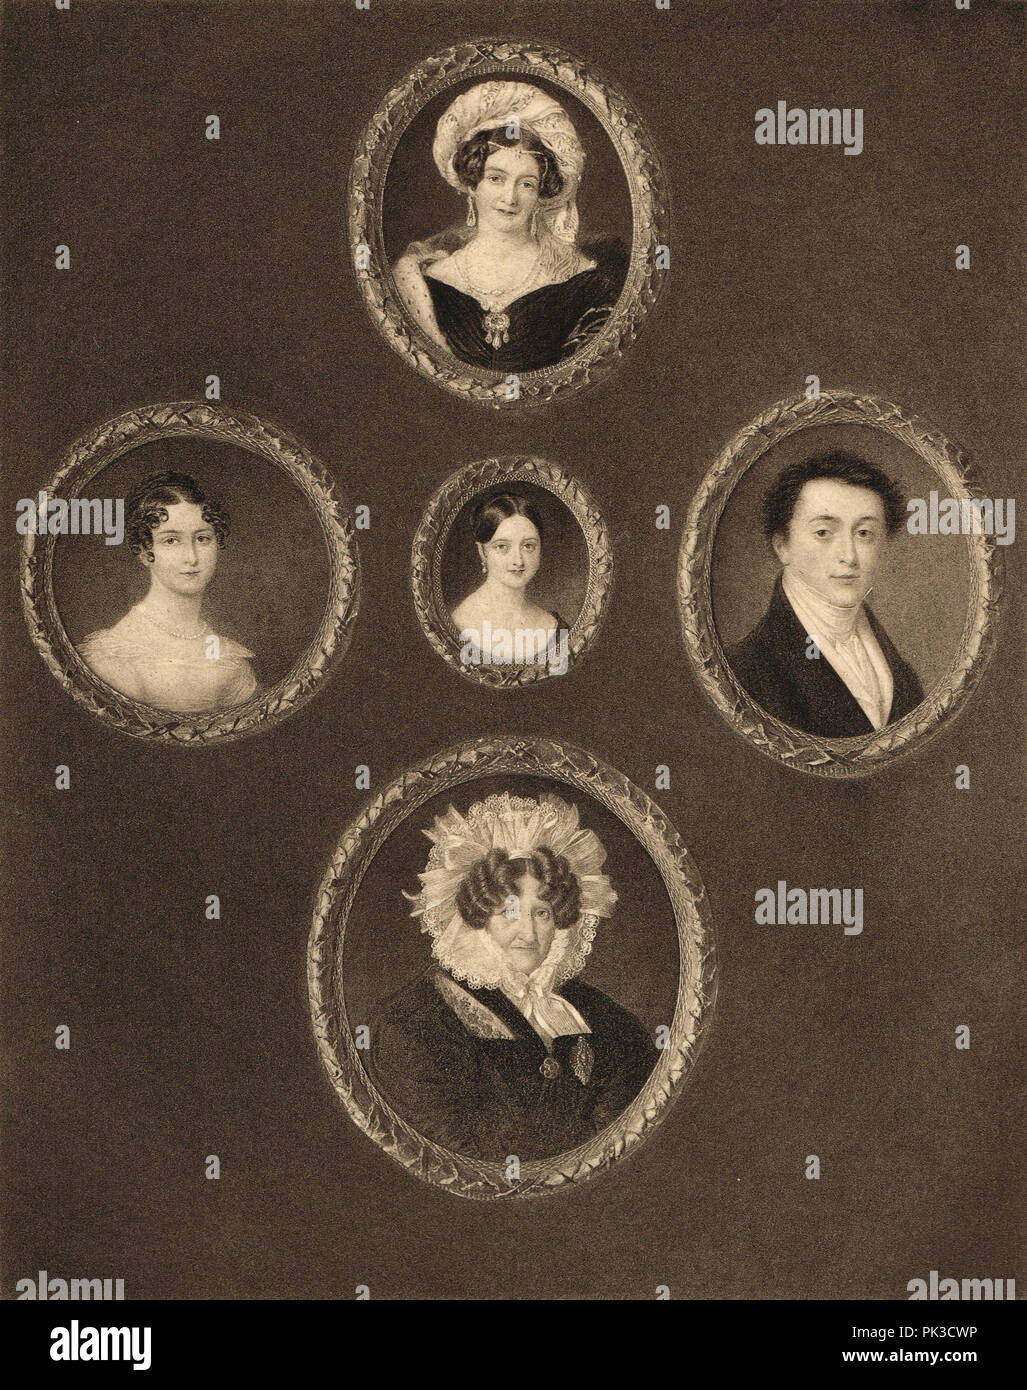 Queen Victoria and some of her relations in 5 miniatures - Stock Image